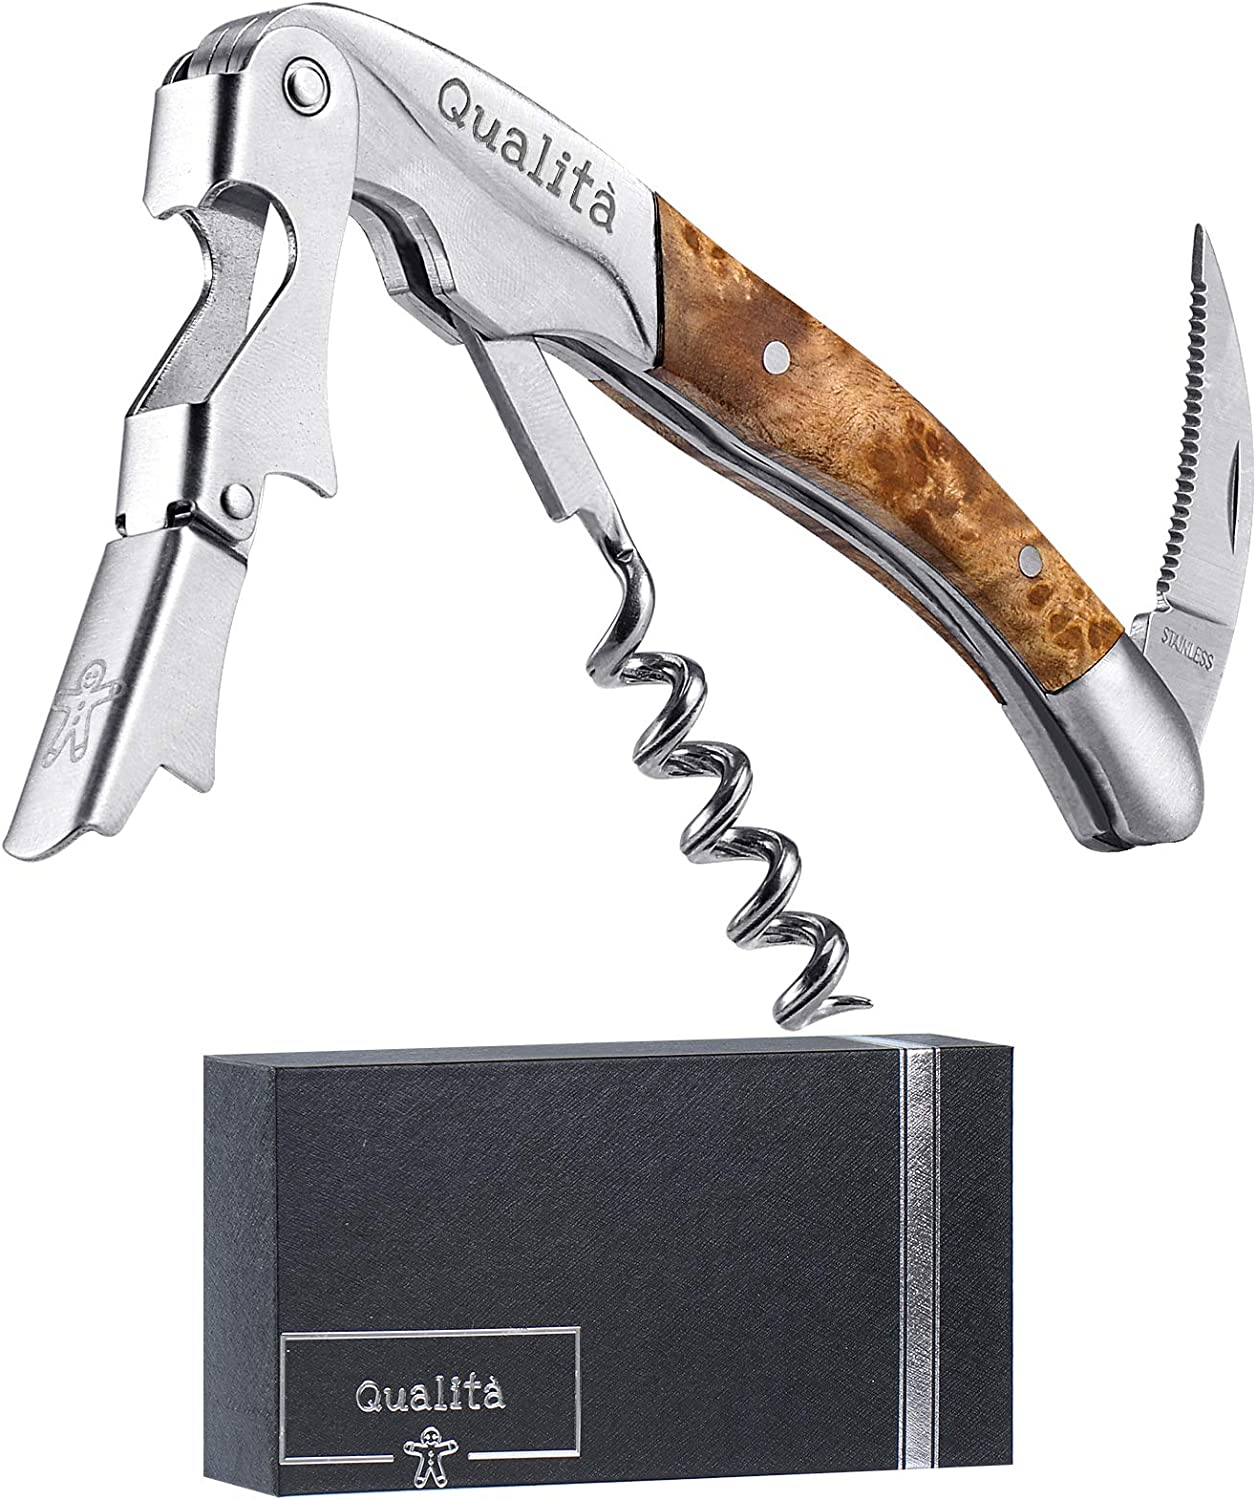 Qualita All in One Corkscrew Louisville-Jefferson County Mall Bottle Opener Foil Wine Cutter and Wholesale